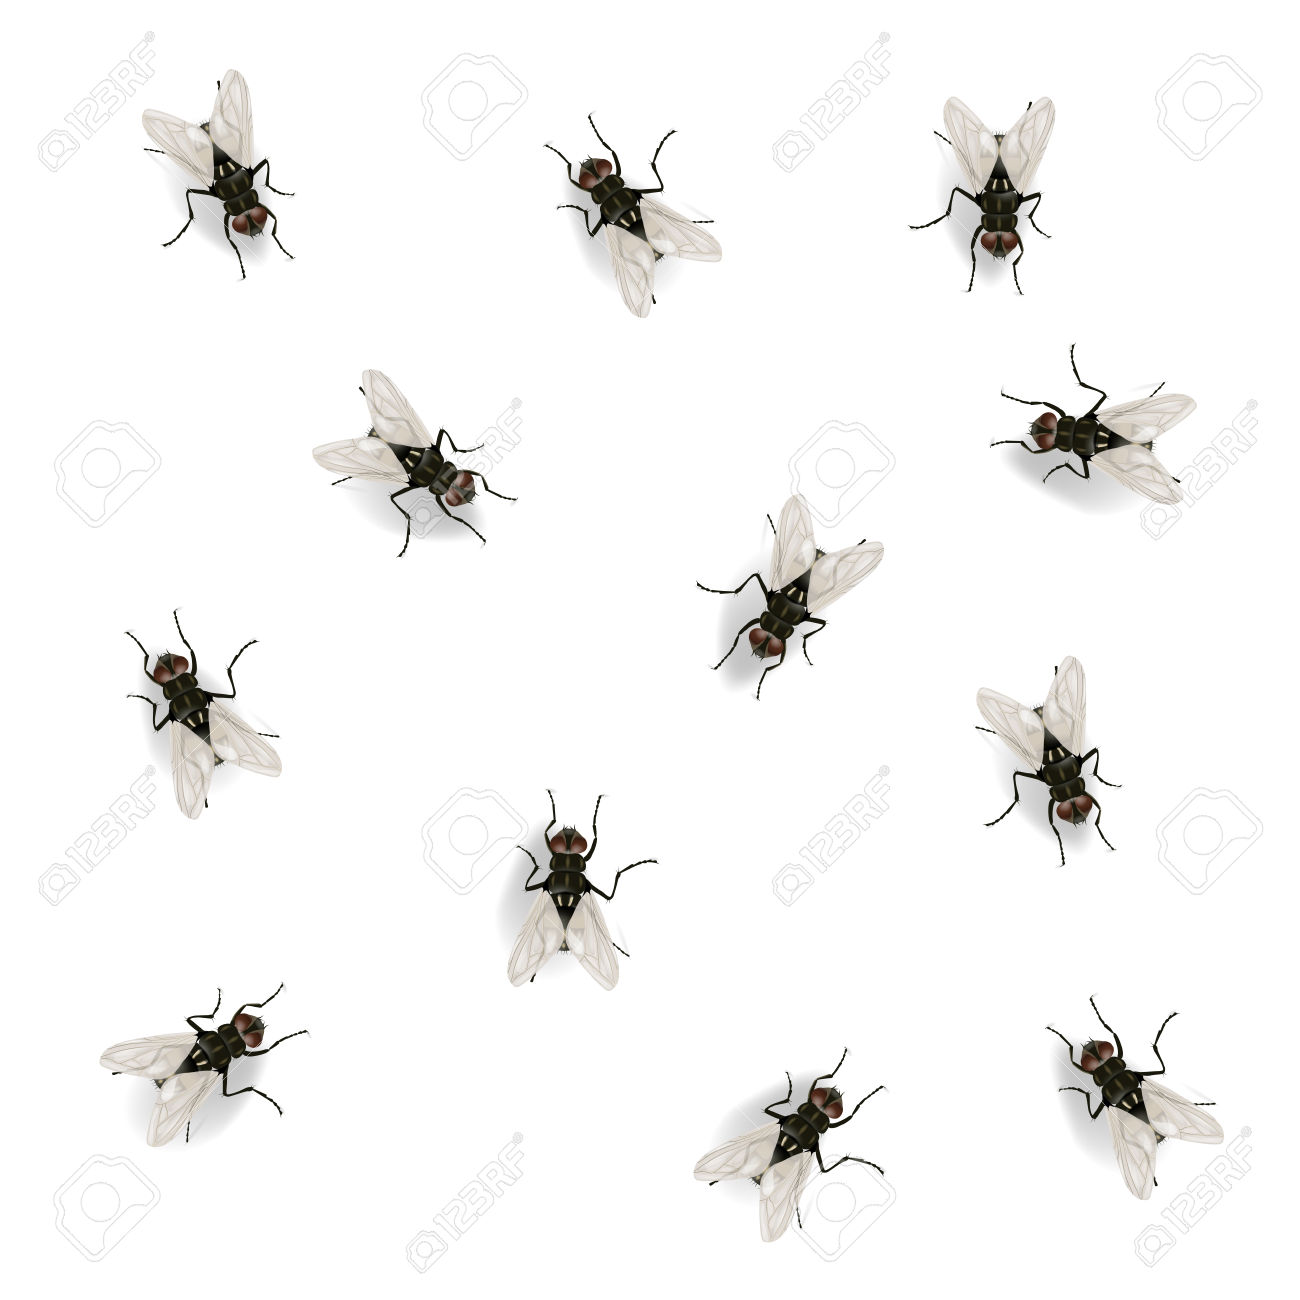 Many Flies On The Wall Vector Illustration Isolated On The White.